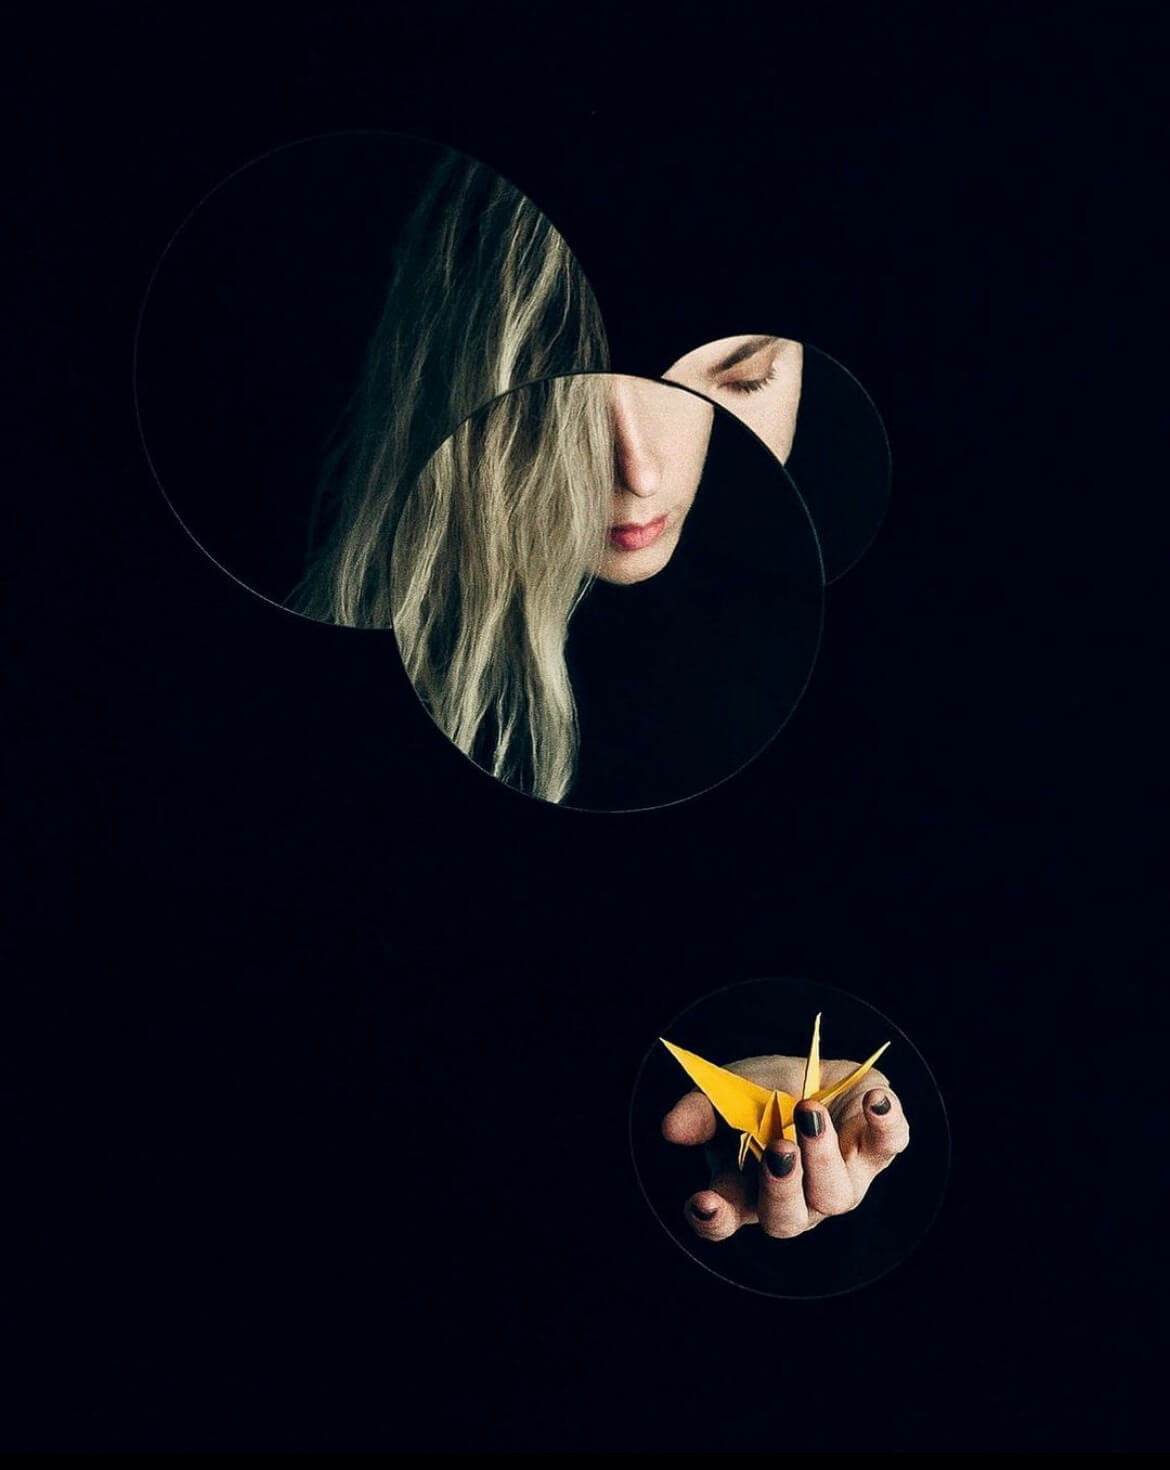 """Self portrait by Irina Pasin, winner of the """"Creative Quarantine"""" photography contest hosted in partnership with Fotomagazin."""